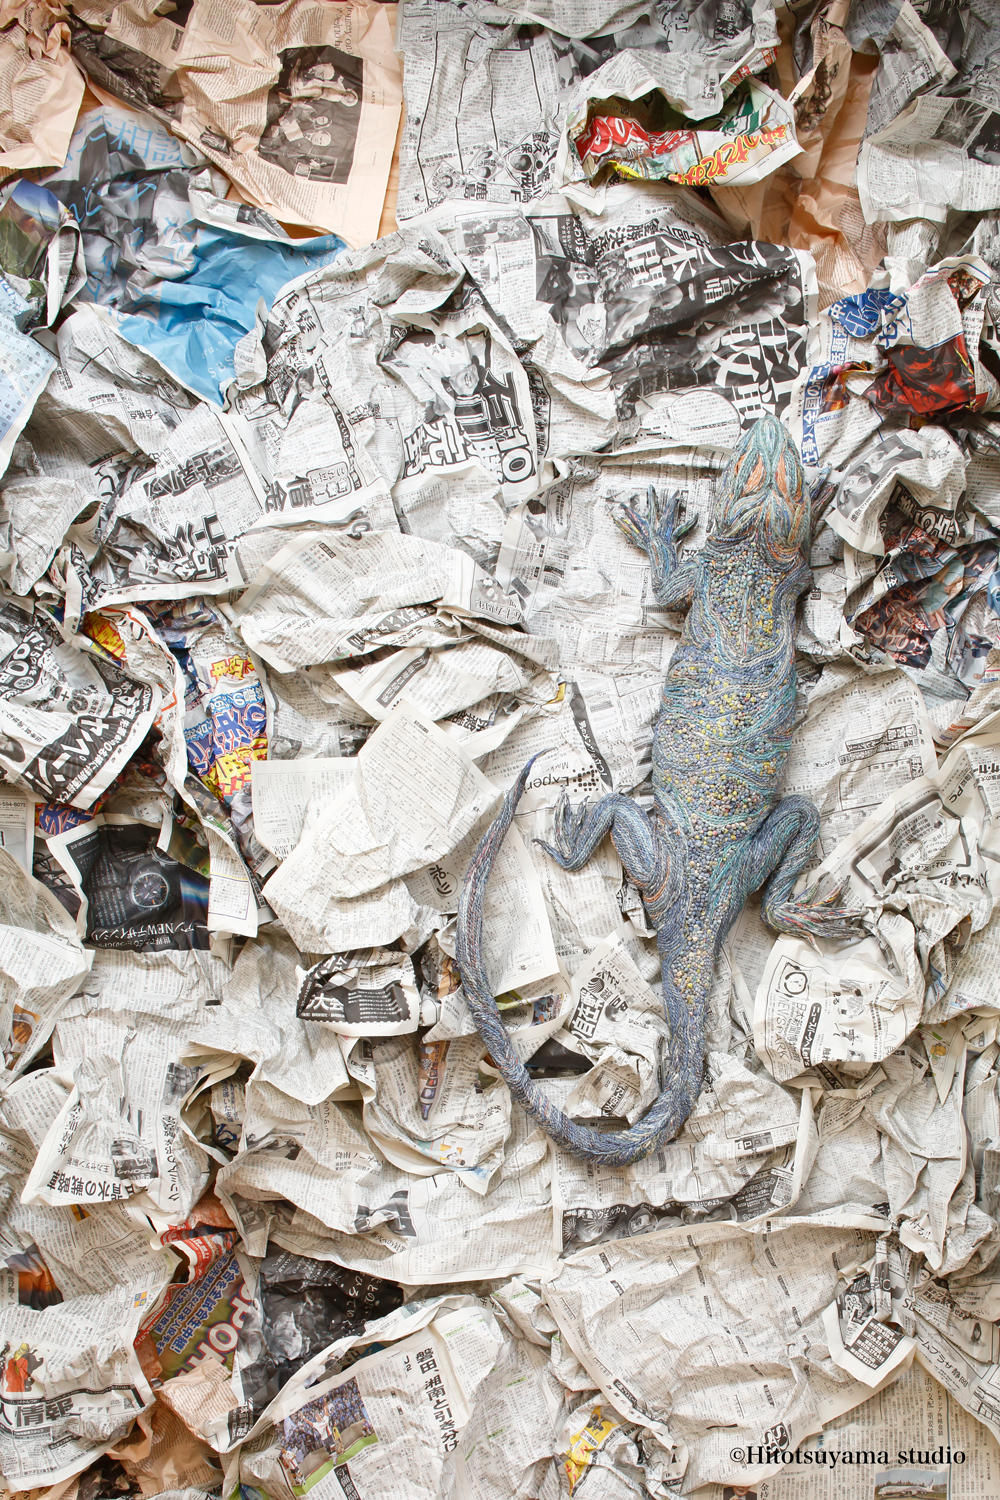 Newspaper_Sculpture_by_Chia_Hitotsuyama